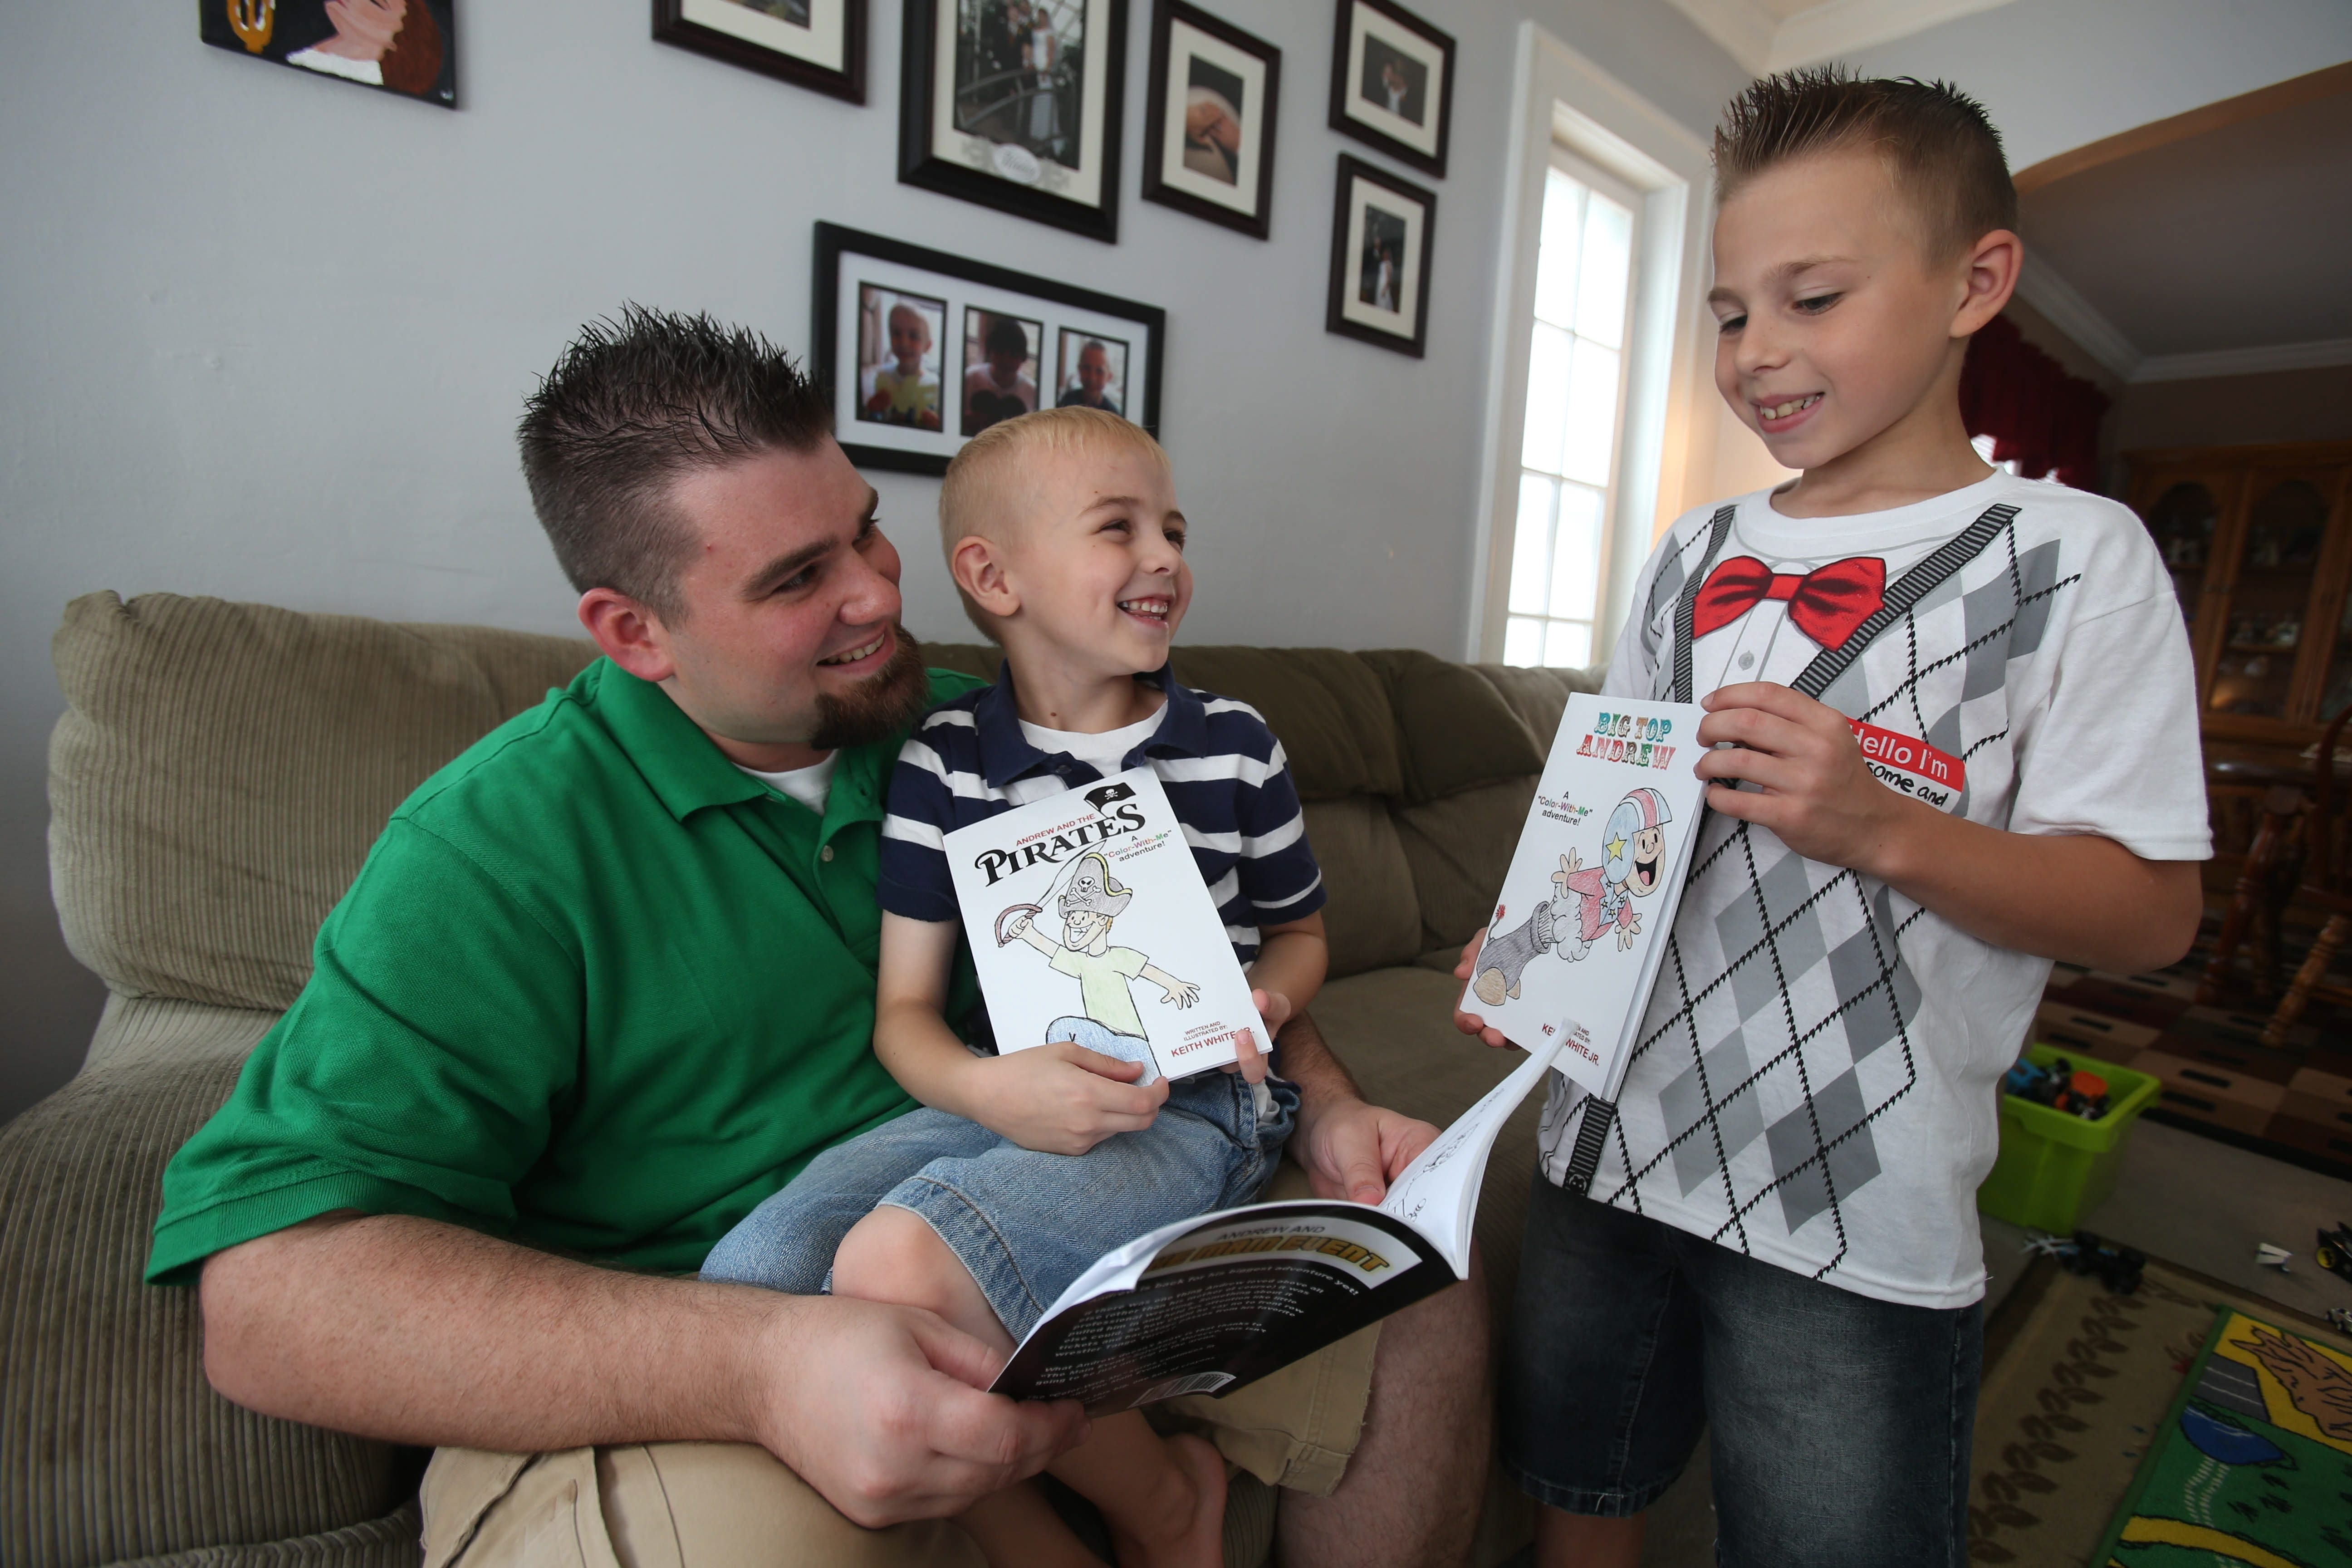 Keith White Jr., with Collin, 5, and Andrew, 10, right, has written short chapter books to help Andrew succeed in school. White hopes his books can be used by other children with reading problems.